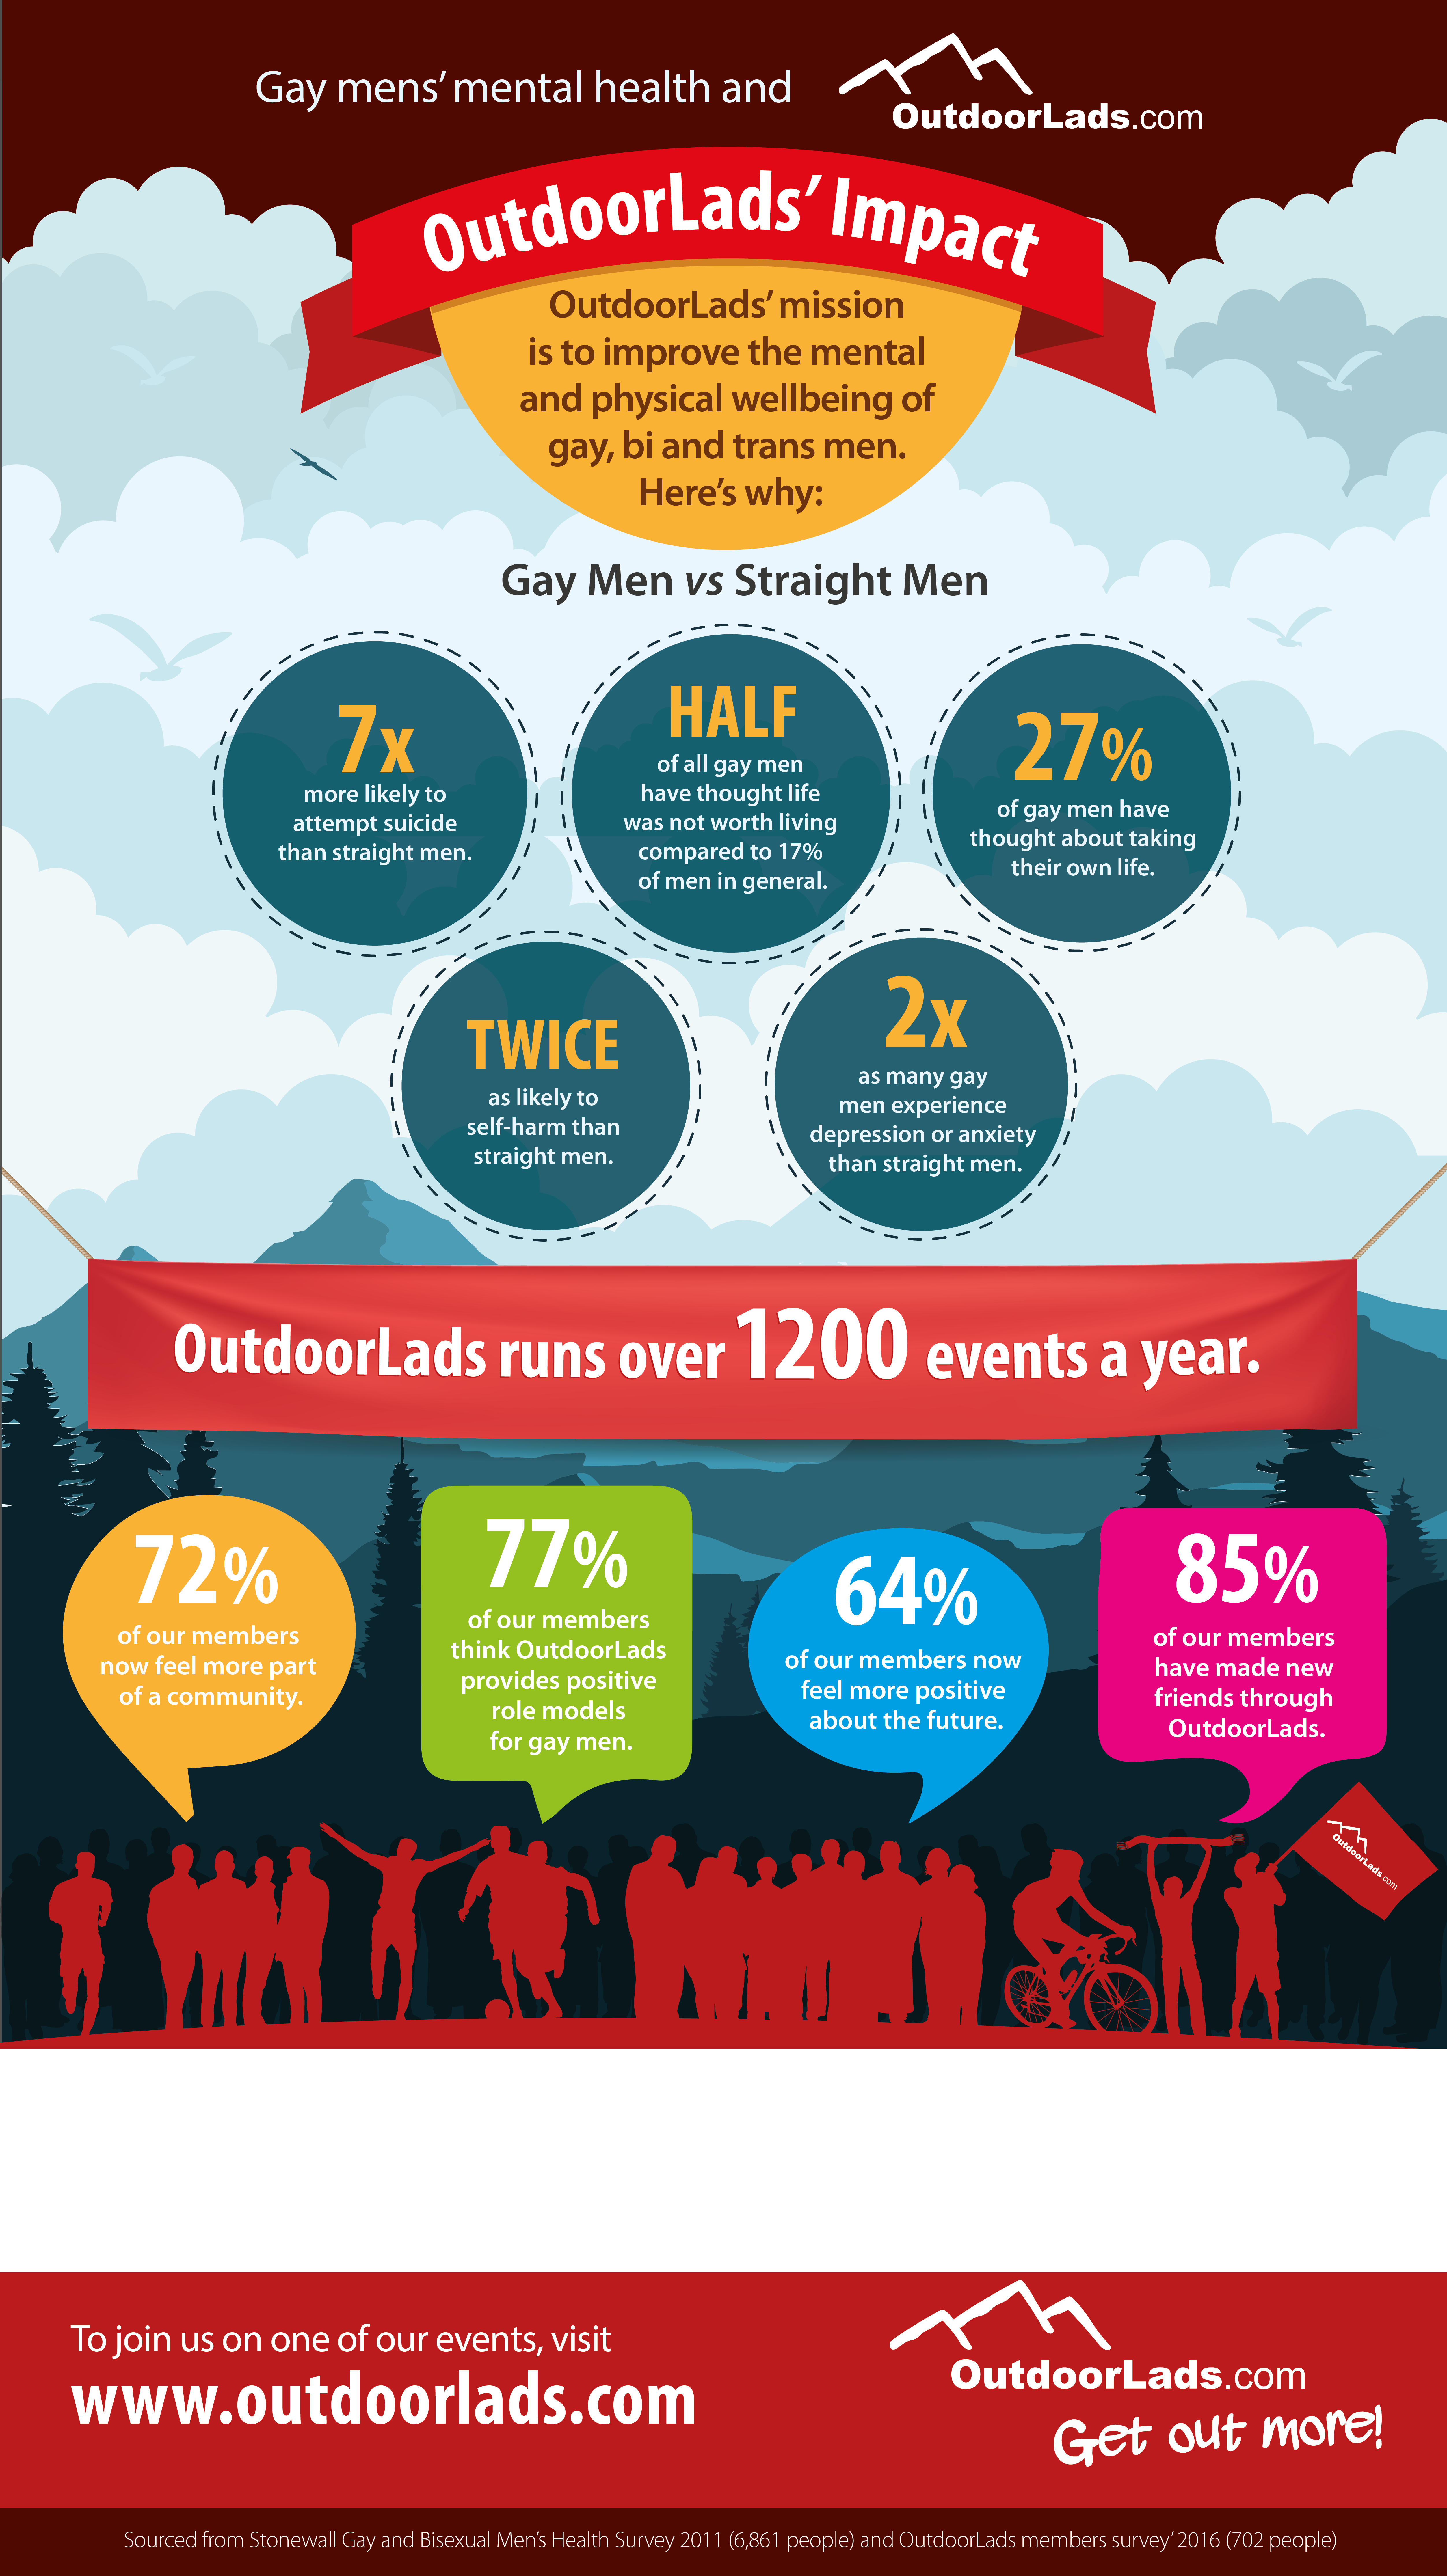 infographic showing the positive impact of OutdoorLads